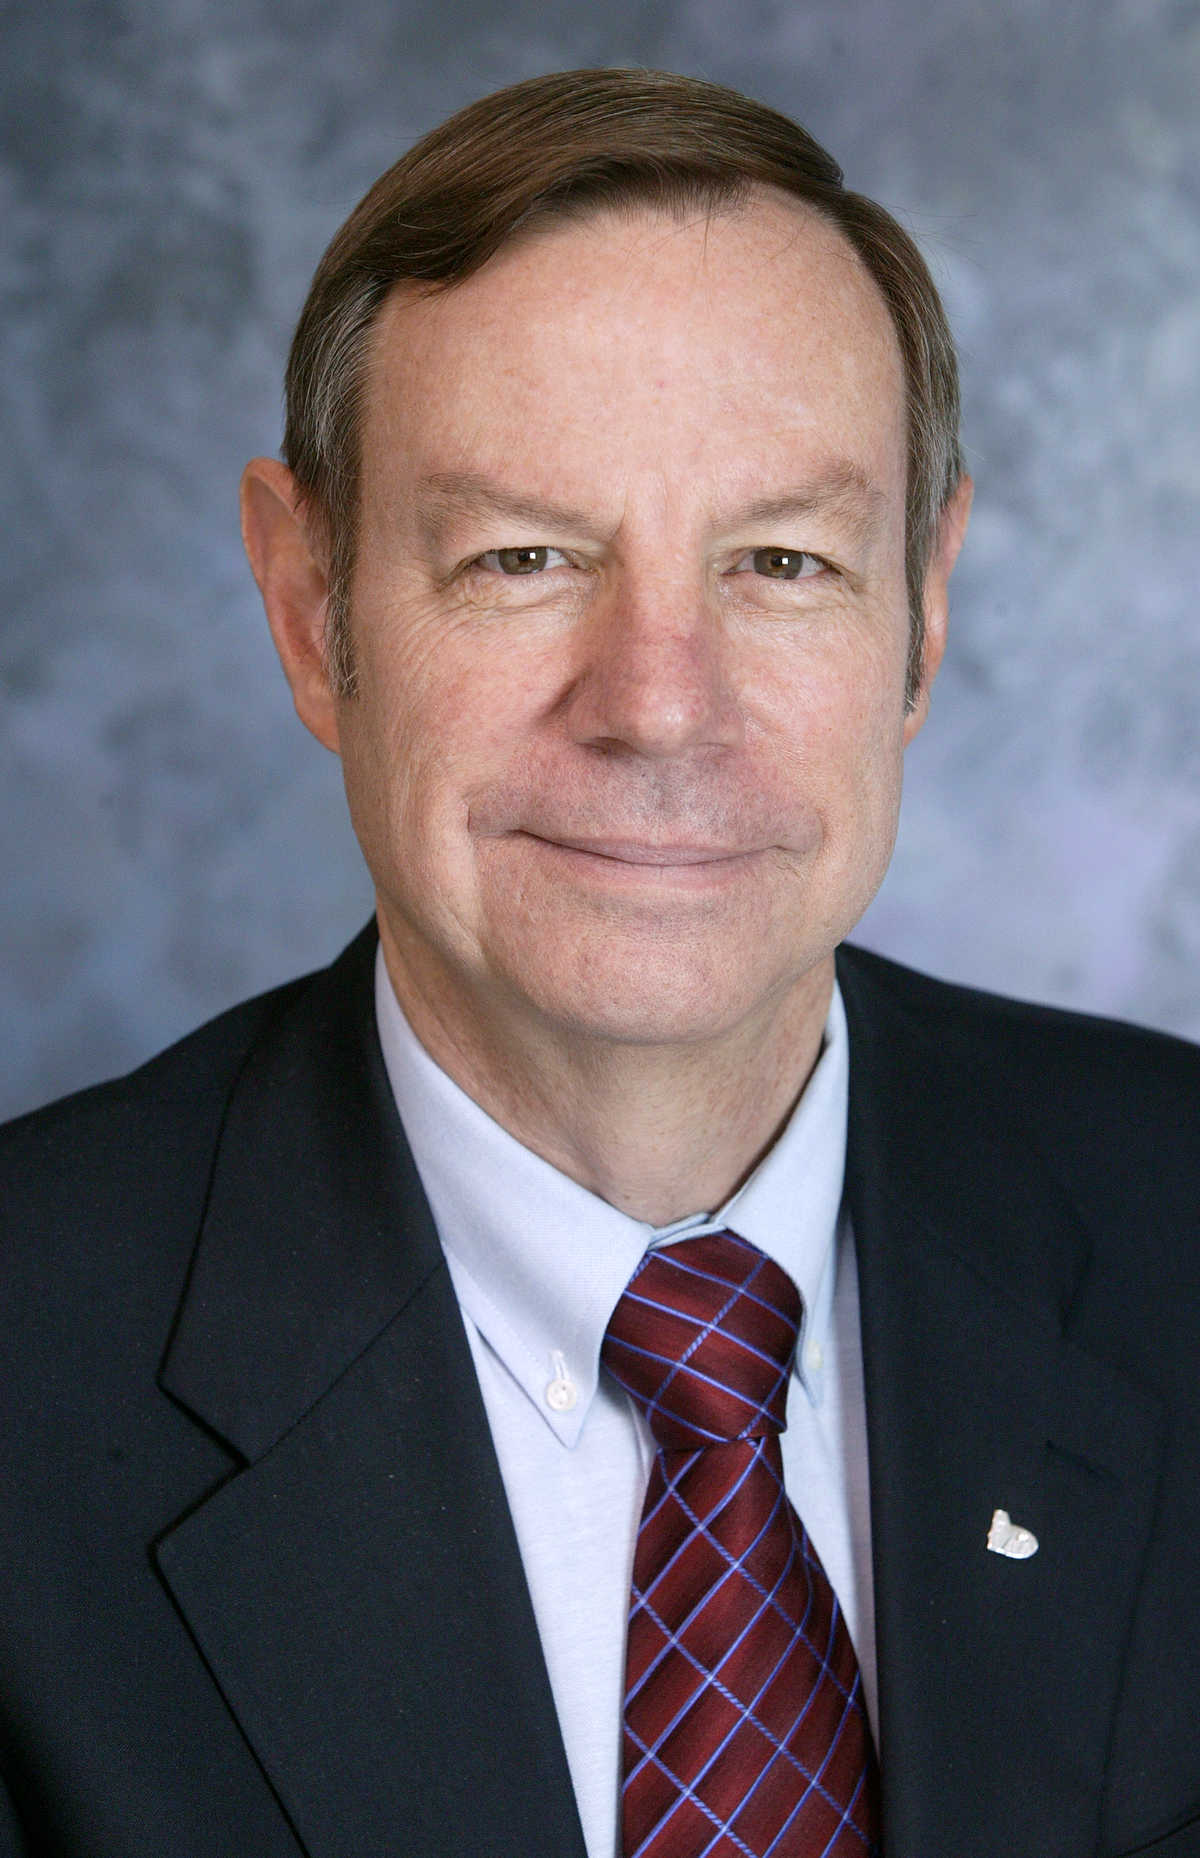 Dr. Charles Anderson , Director, Mechanical Engineering Division